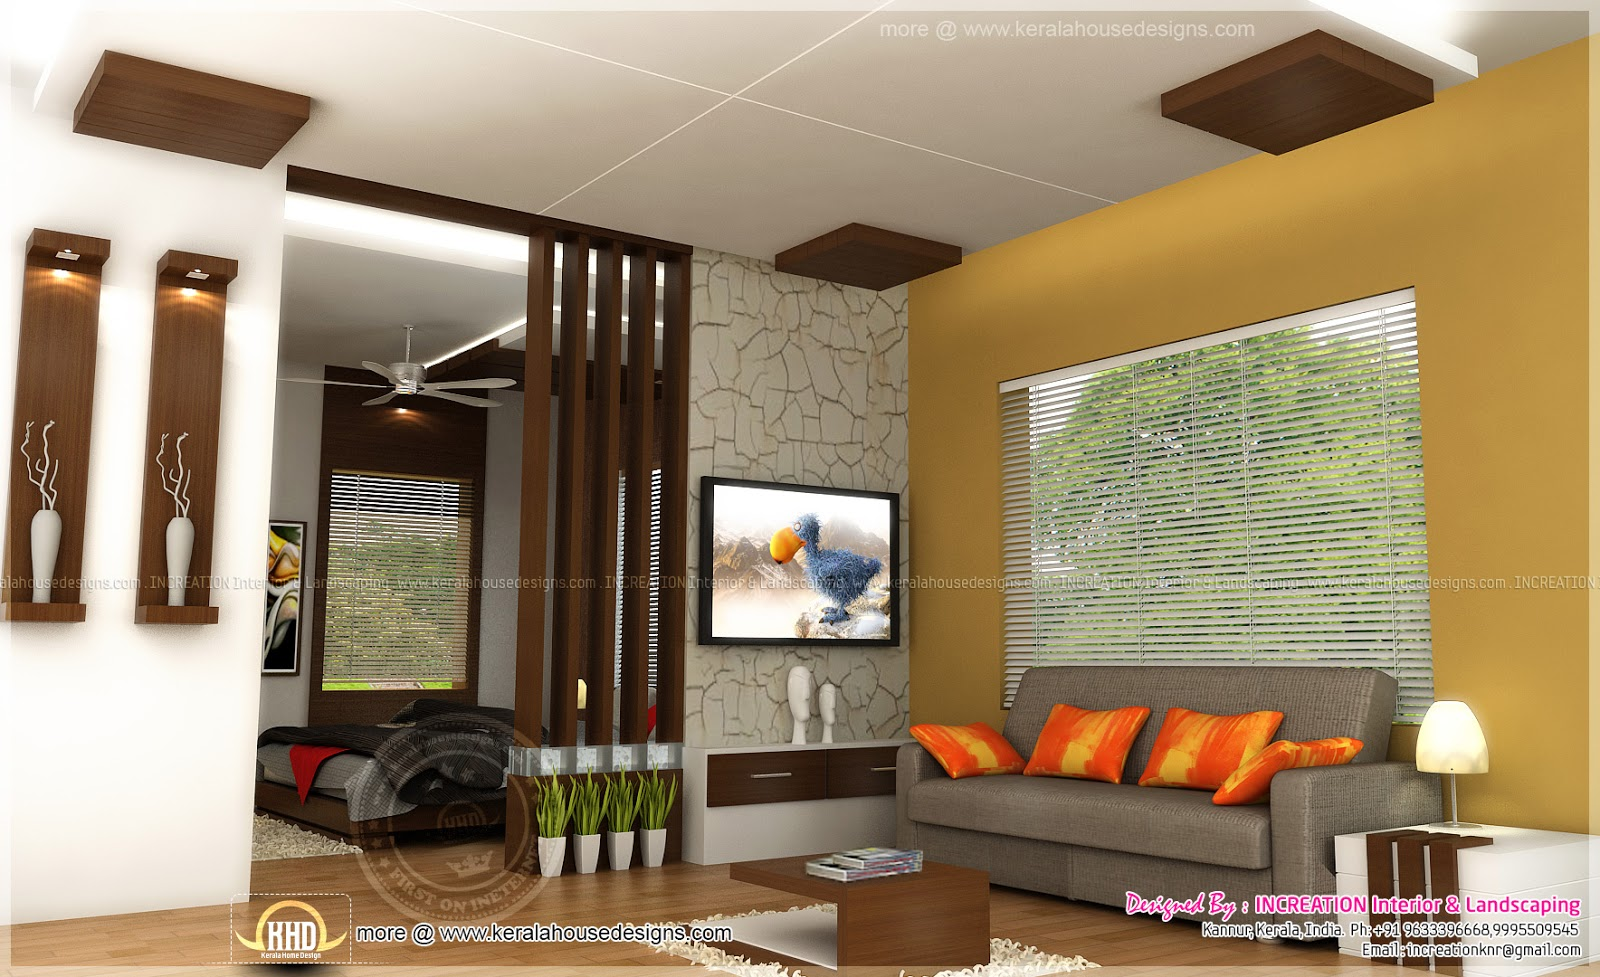 Interior designs from kannur kerala home kerala plans for Interior design gallery